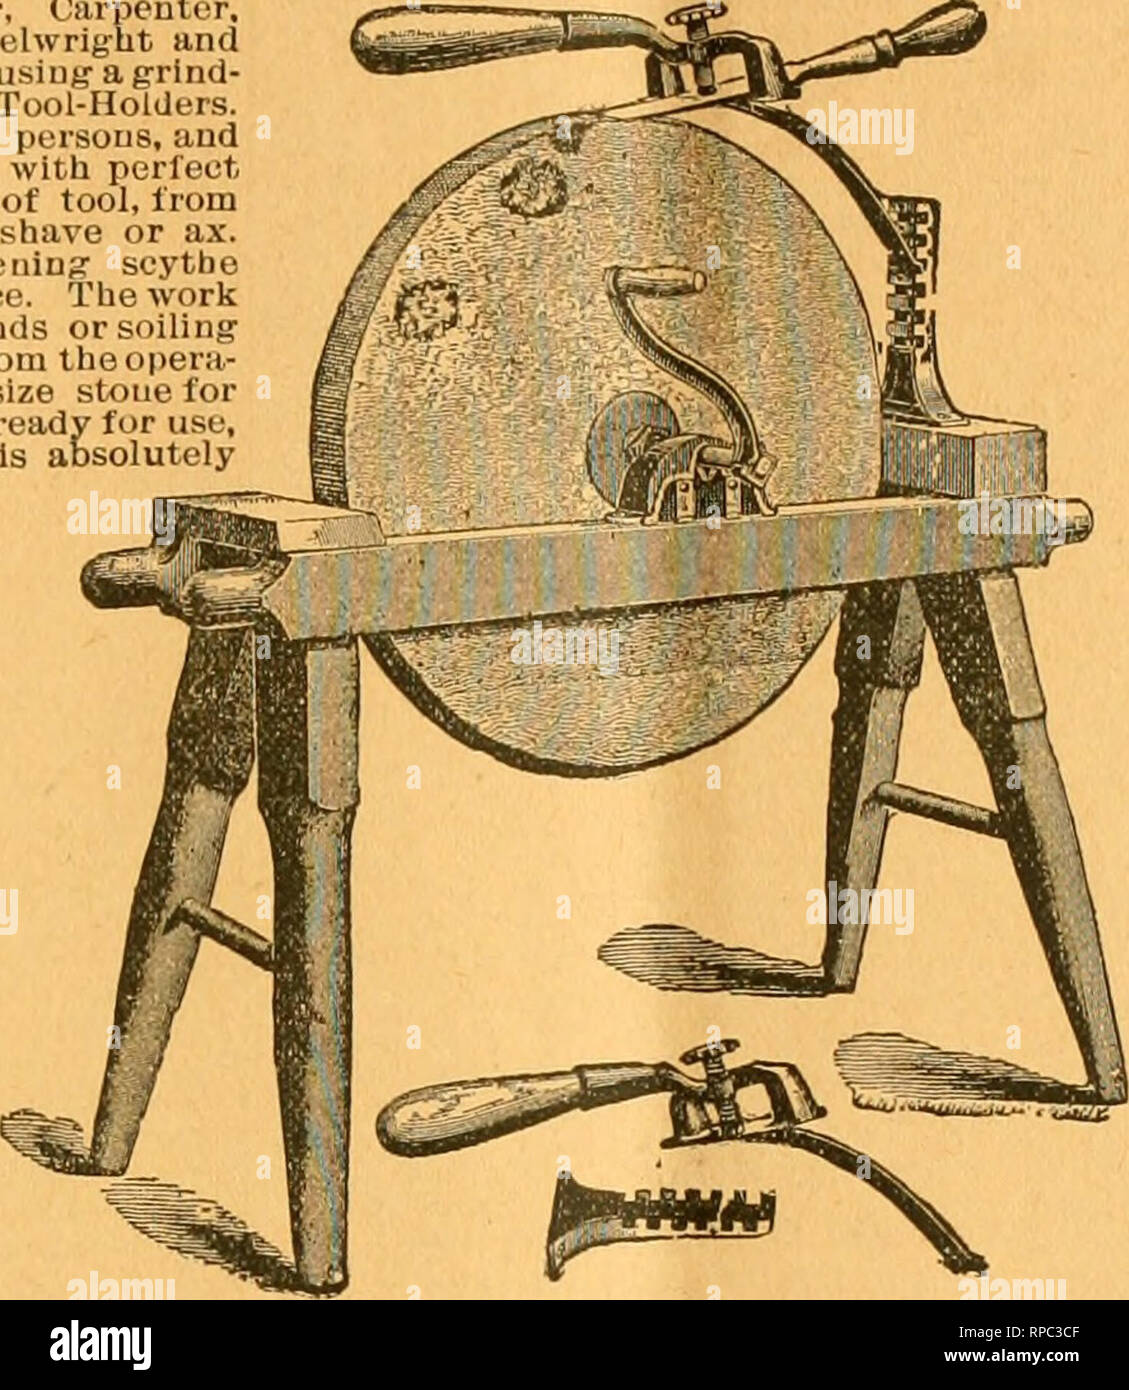 . American bee journal. Bee culture; Bees. 1896. THE AMERICAN BEE JOURNAL. 283 A HANDY TOOL-HOLDER! Sent by Exprcsi, for $1.30 ; or ivilli the Bee Journal one year—both for $3.00. Every Manufacturer. Miller, Carpenter, Cabinet Maker, Machinist. Wlieehvrigut and Quarryman. Farmer, or any oneusiu^aijrind- stone, should liave one of tlioso Tool-Holders. One boy can do the work of two persons, and grind much faster, easier and with perfect accuracy. Will hold any kind of tool, from the smallest chieel to a draw shave or ax. Extra attaehiueut for sharpening' scythe blades included iu the above pric - Stock Image